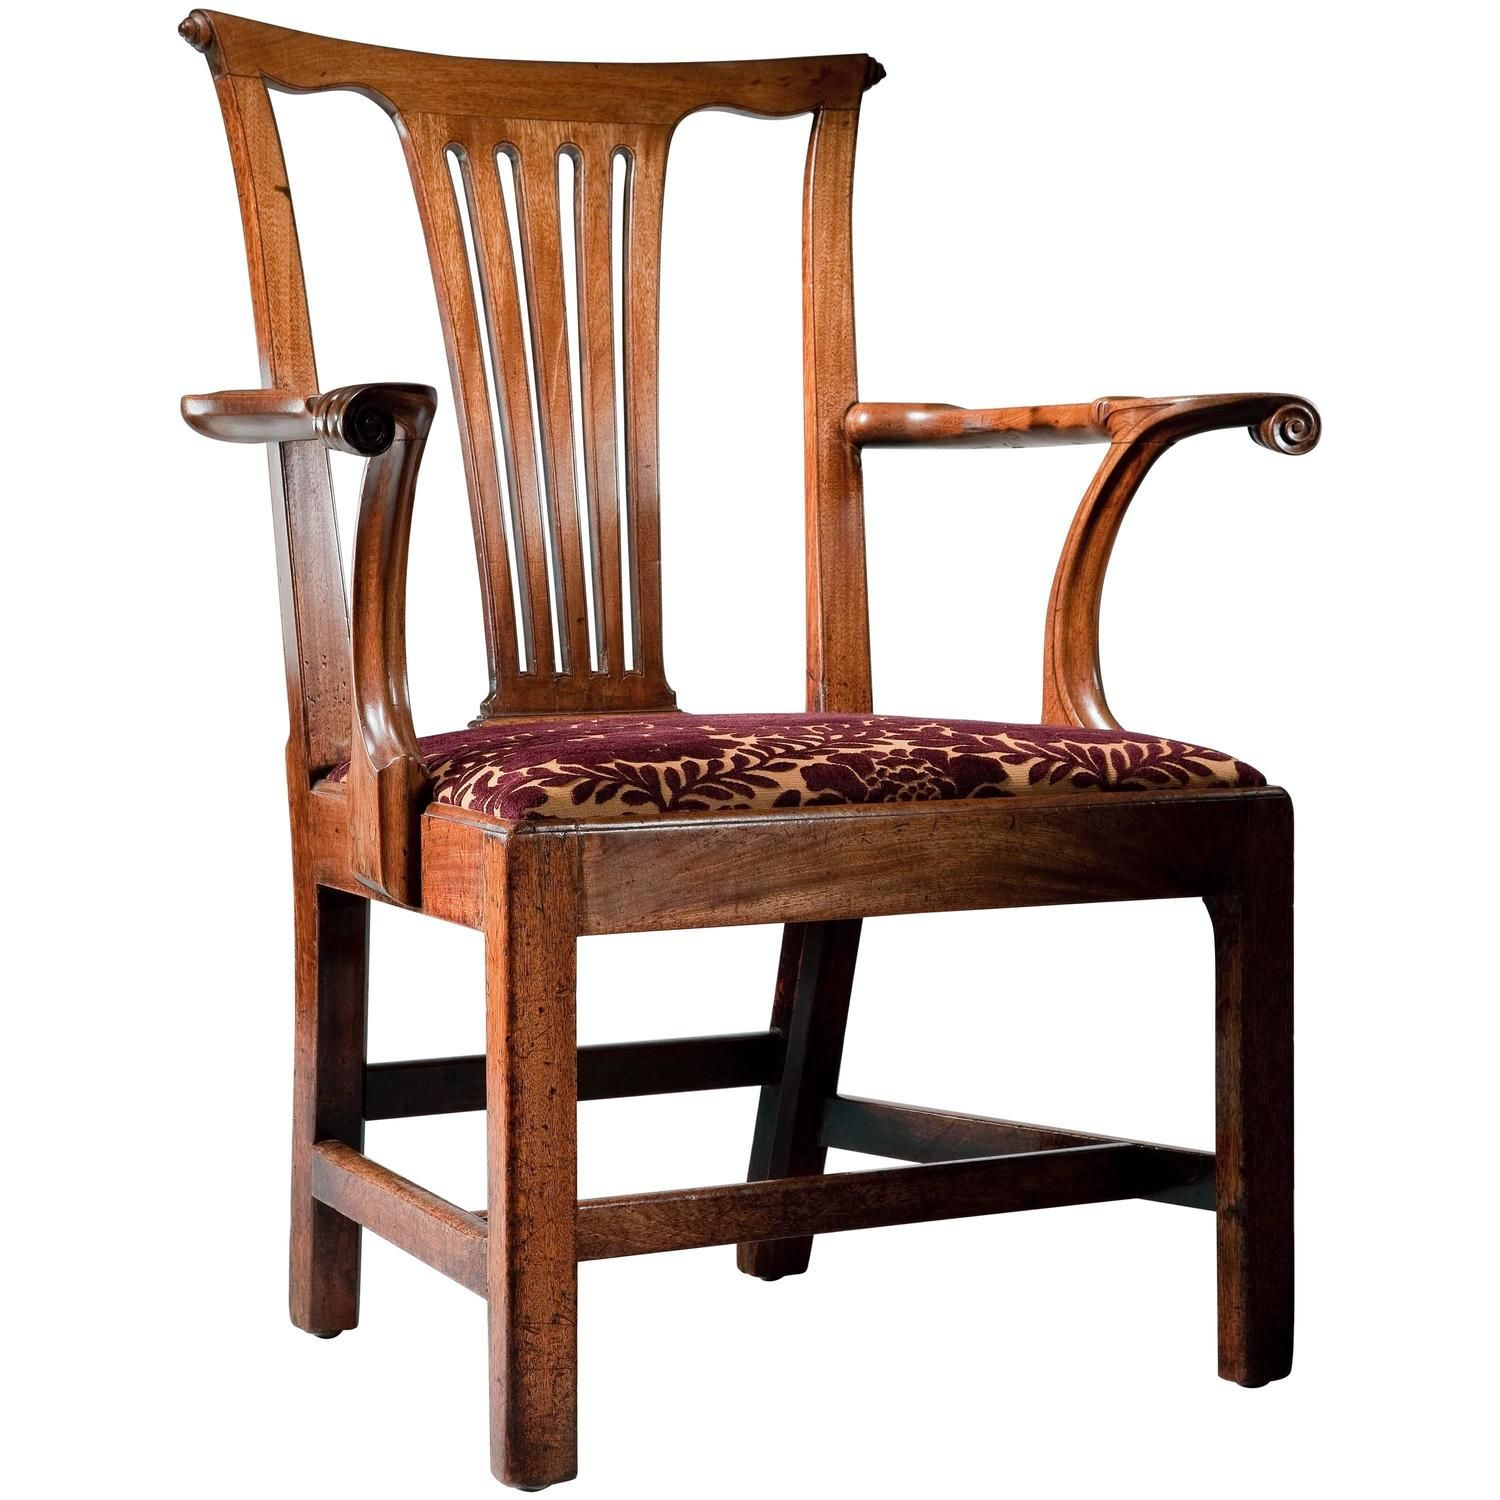 Mid 18th century Mahogany Open Armchair in the manner of Giles